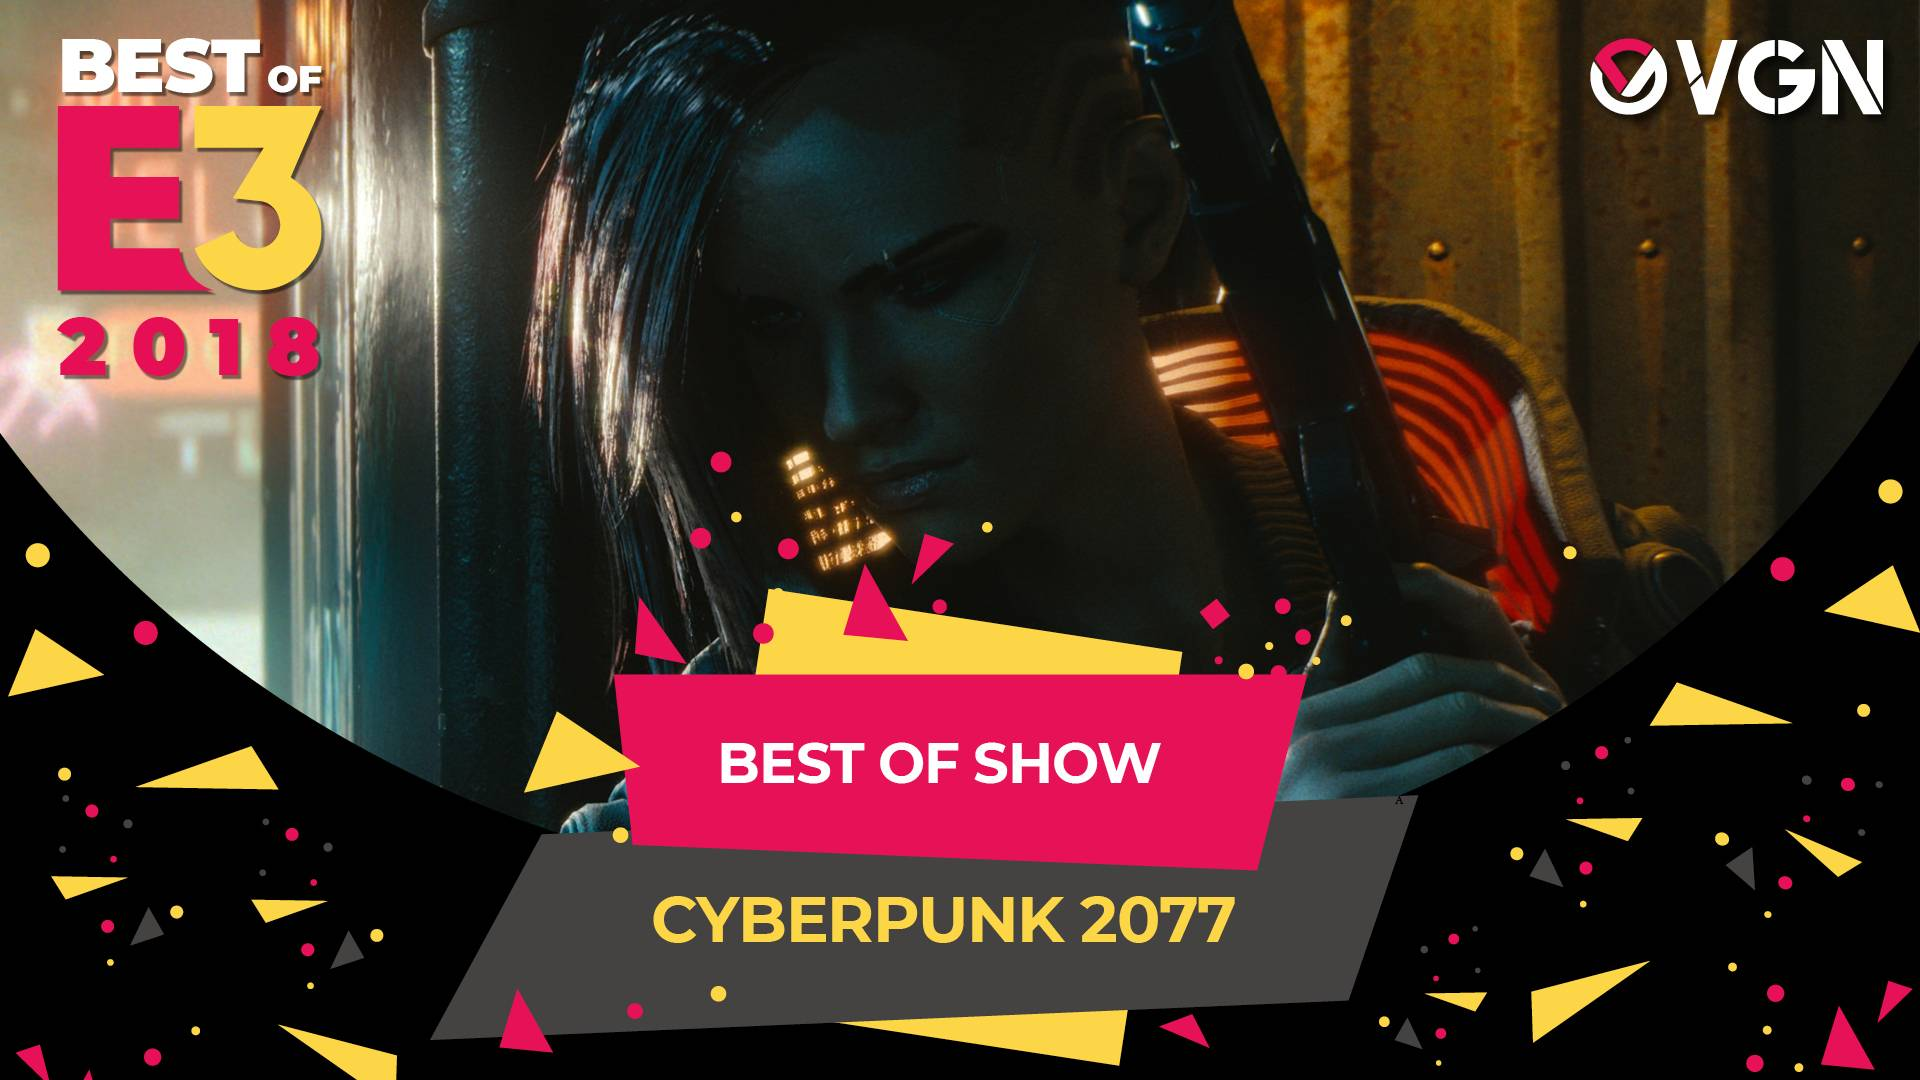 E3 2018 - Best of Show - Cyberpunk 2077